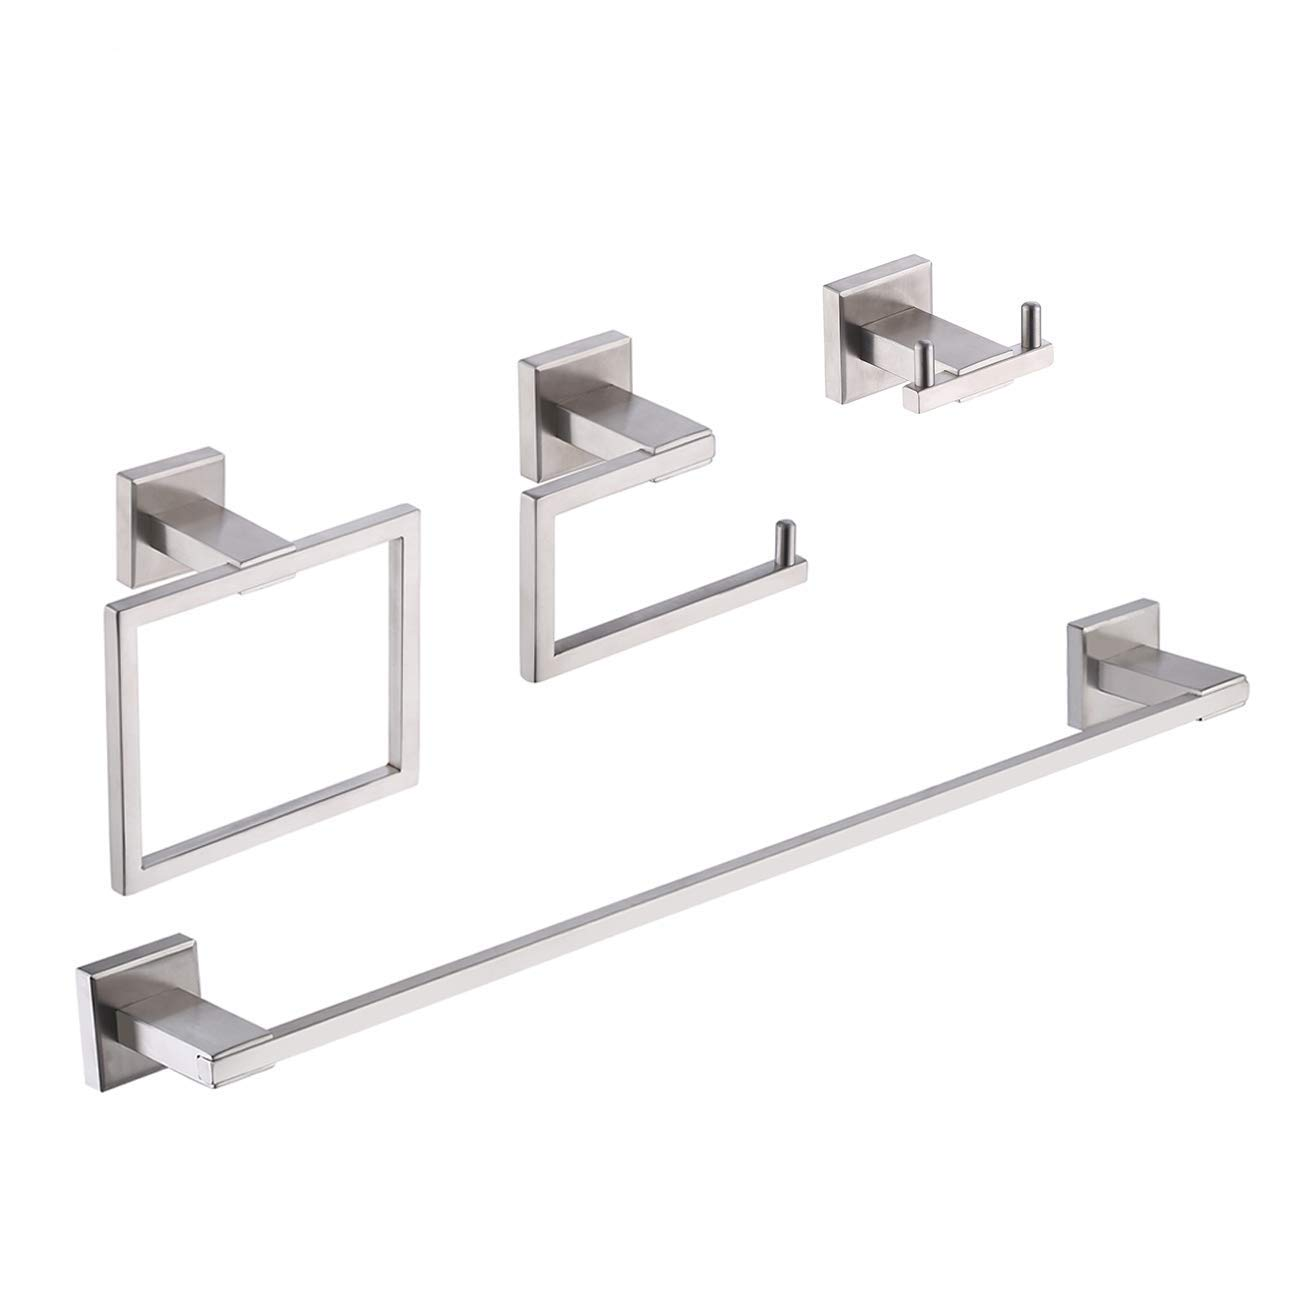 KES 4-Piece Bathroom Accessory Set Including Towel Bar Toilet Paper Holder Towel Ring Double Coat Hook SUS 304 Stainless Steel RUSTPROOF Wall Mount Contemporary Square Style Brushed Finish, LA242DG-42